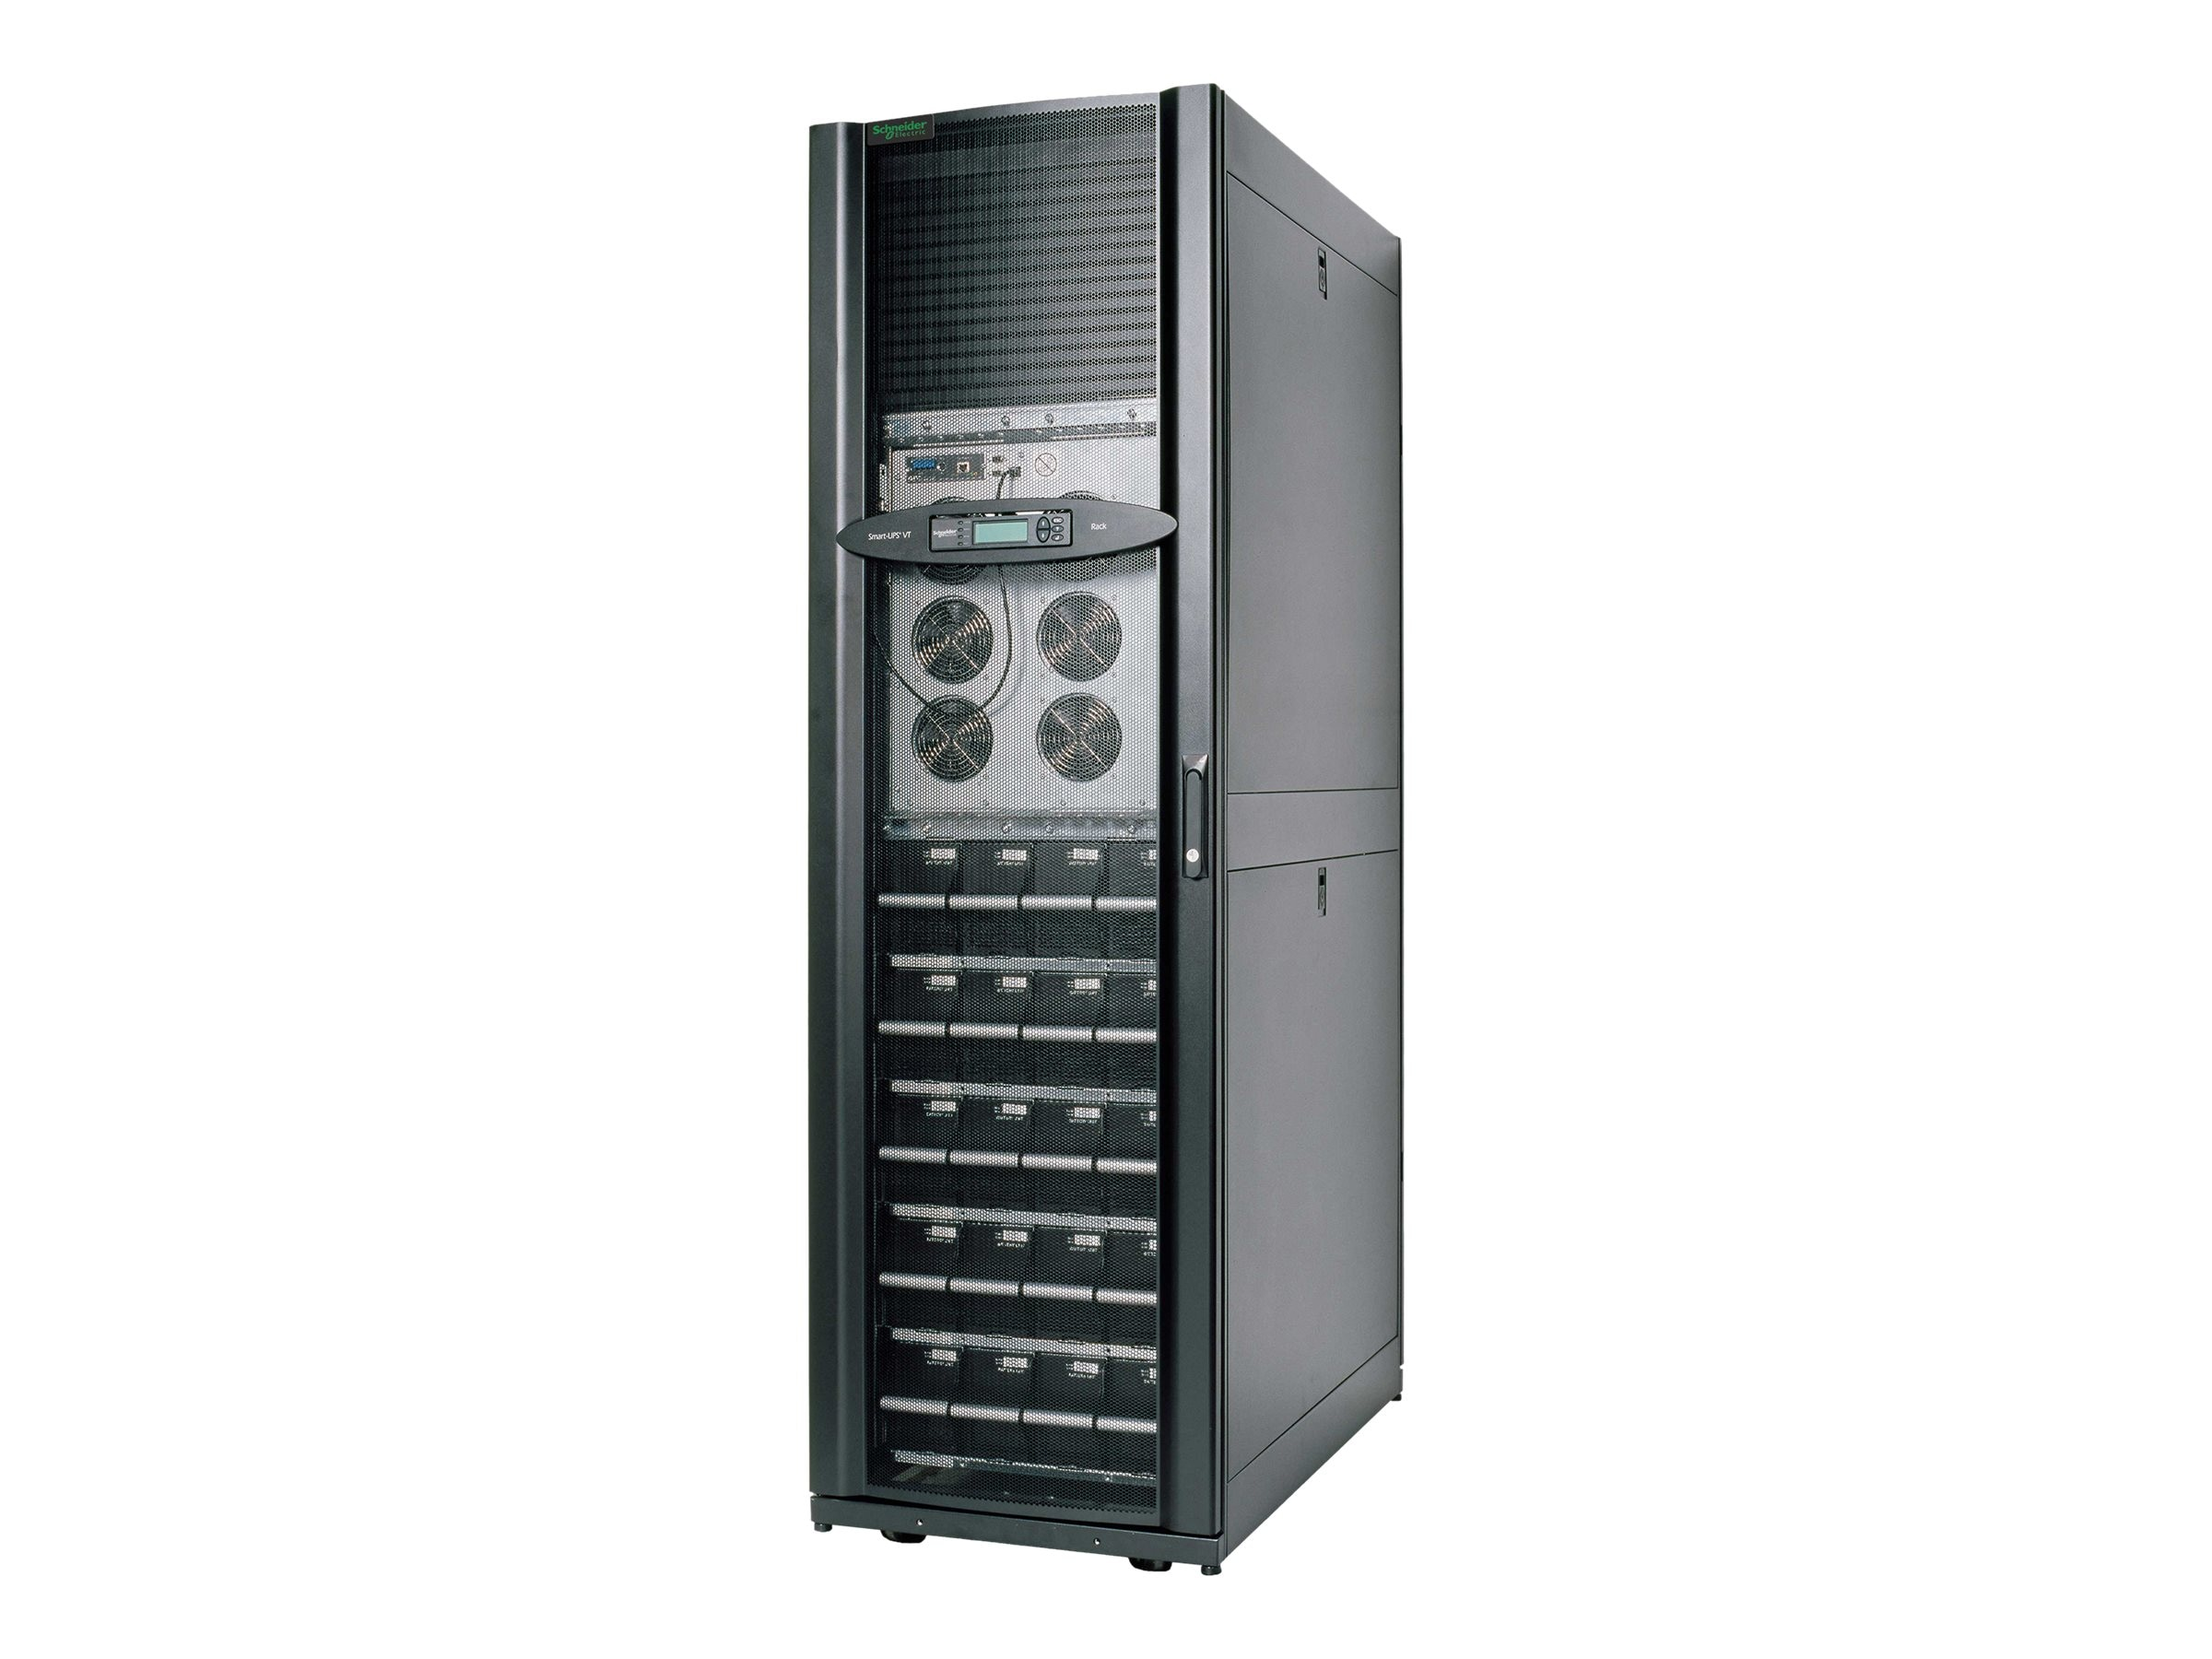 APC Smart-UPS VT 20kVA 208V Rack Mounted with (5) Battery Modules, PDU, Startup, SUVTR20KF5B5S, 7232331, Battery Backup/UPS